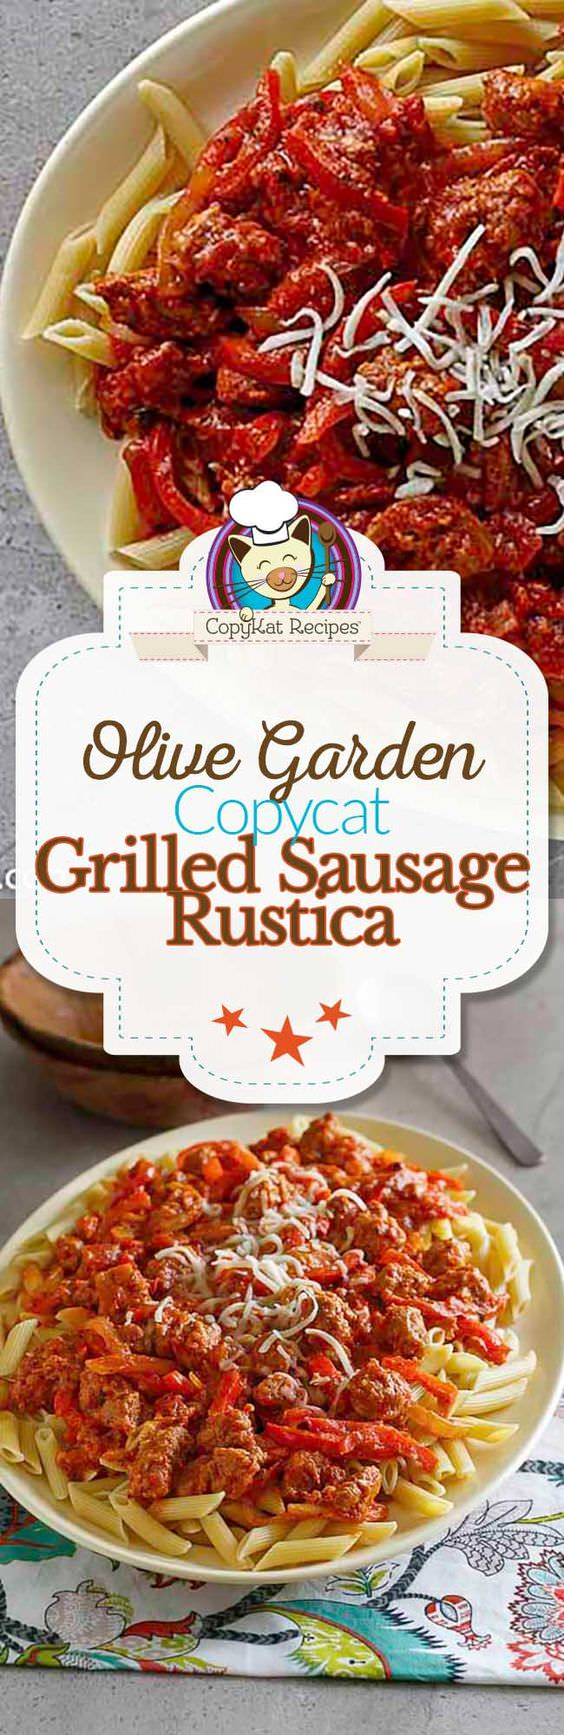 Olive Garden Grilled Sausage and Pepper Rustica can be made at home with this easy to prepare recipe. Enjoy this restaurant flavor at home.